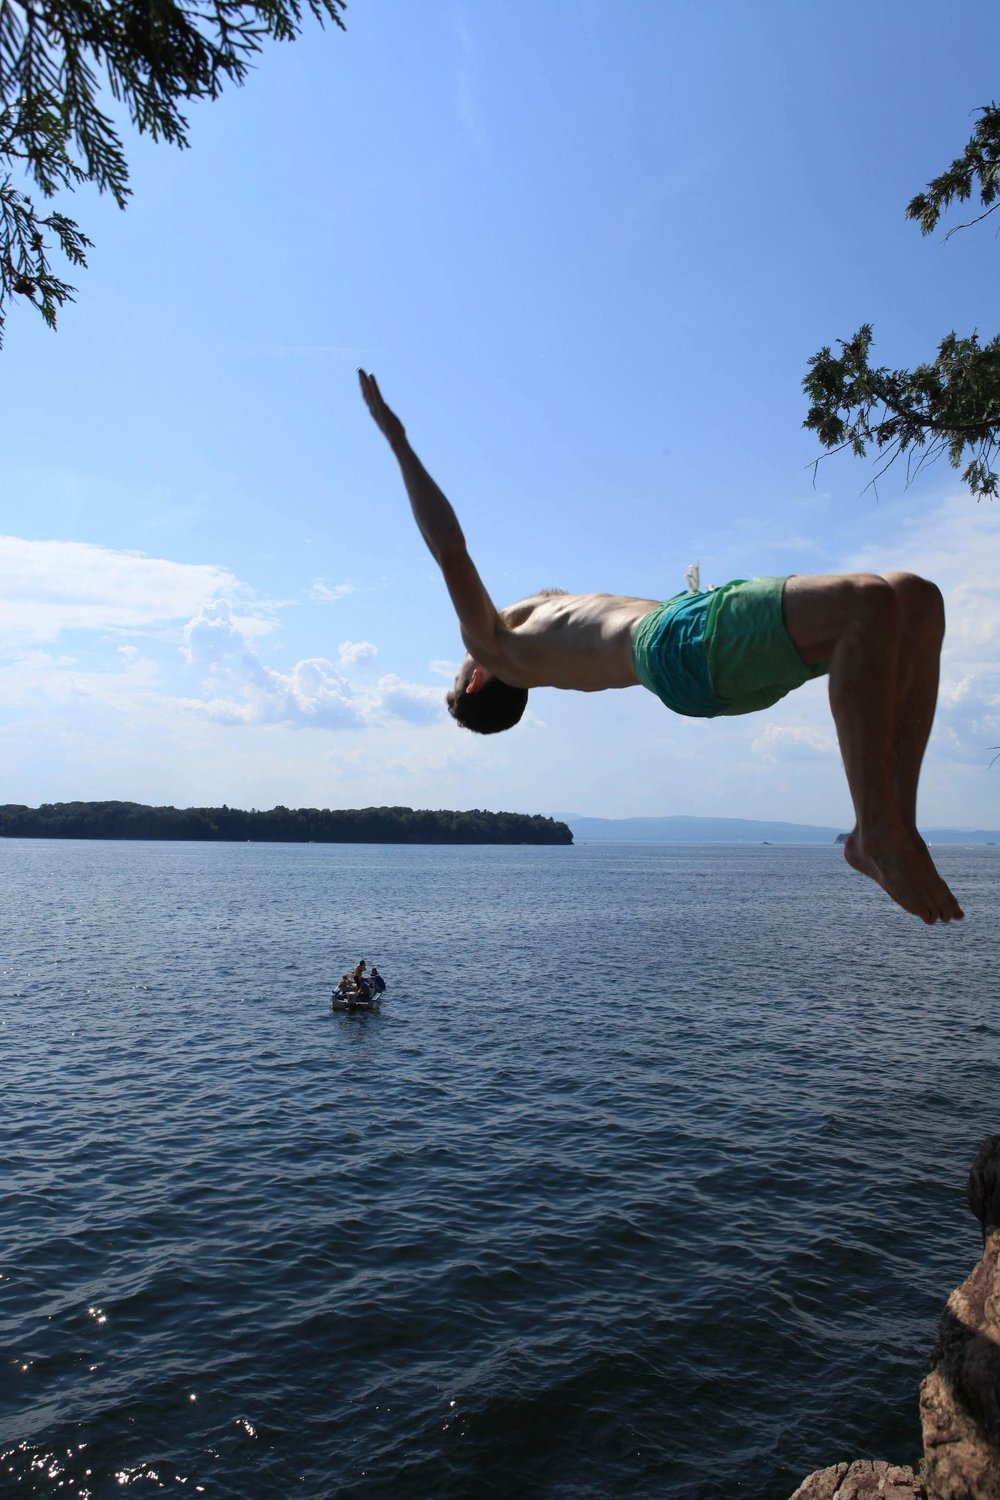 Jumping off cliffs in Vermont